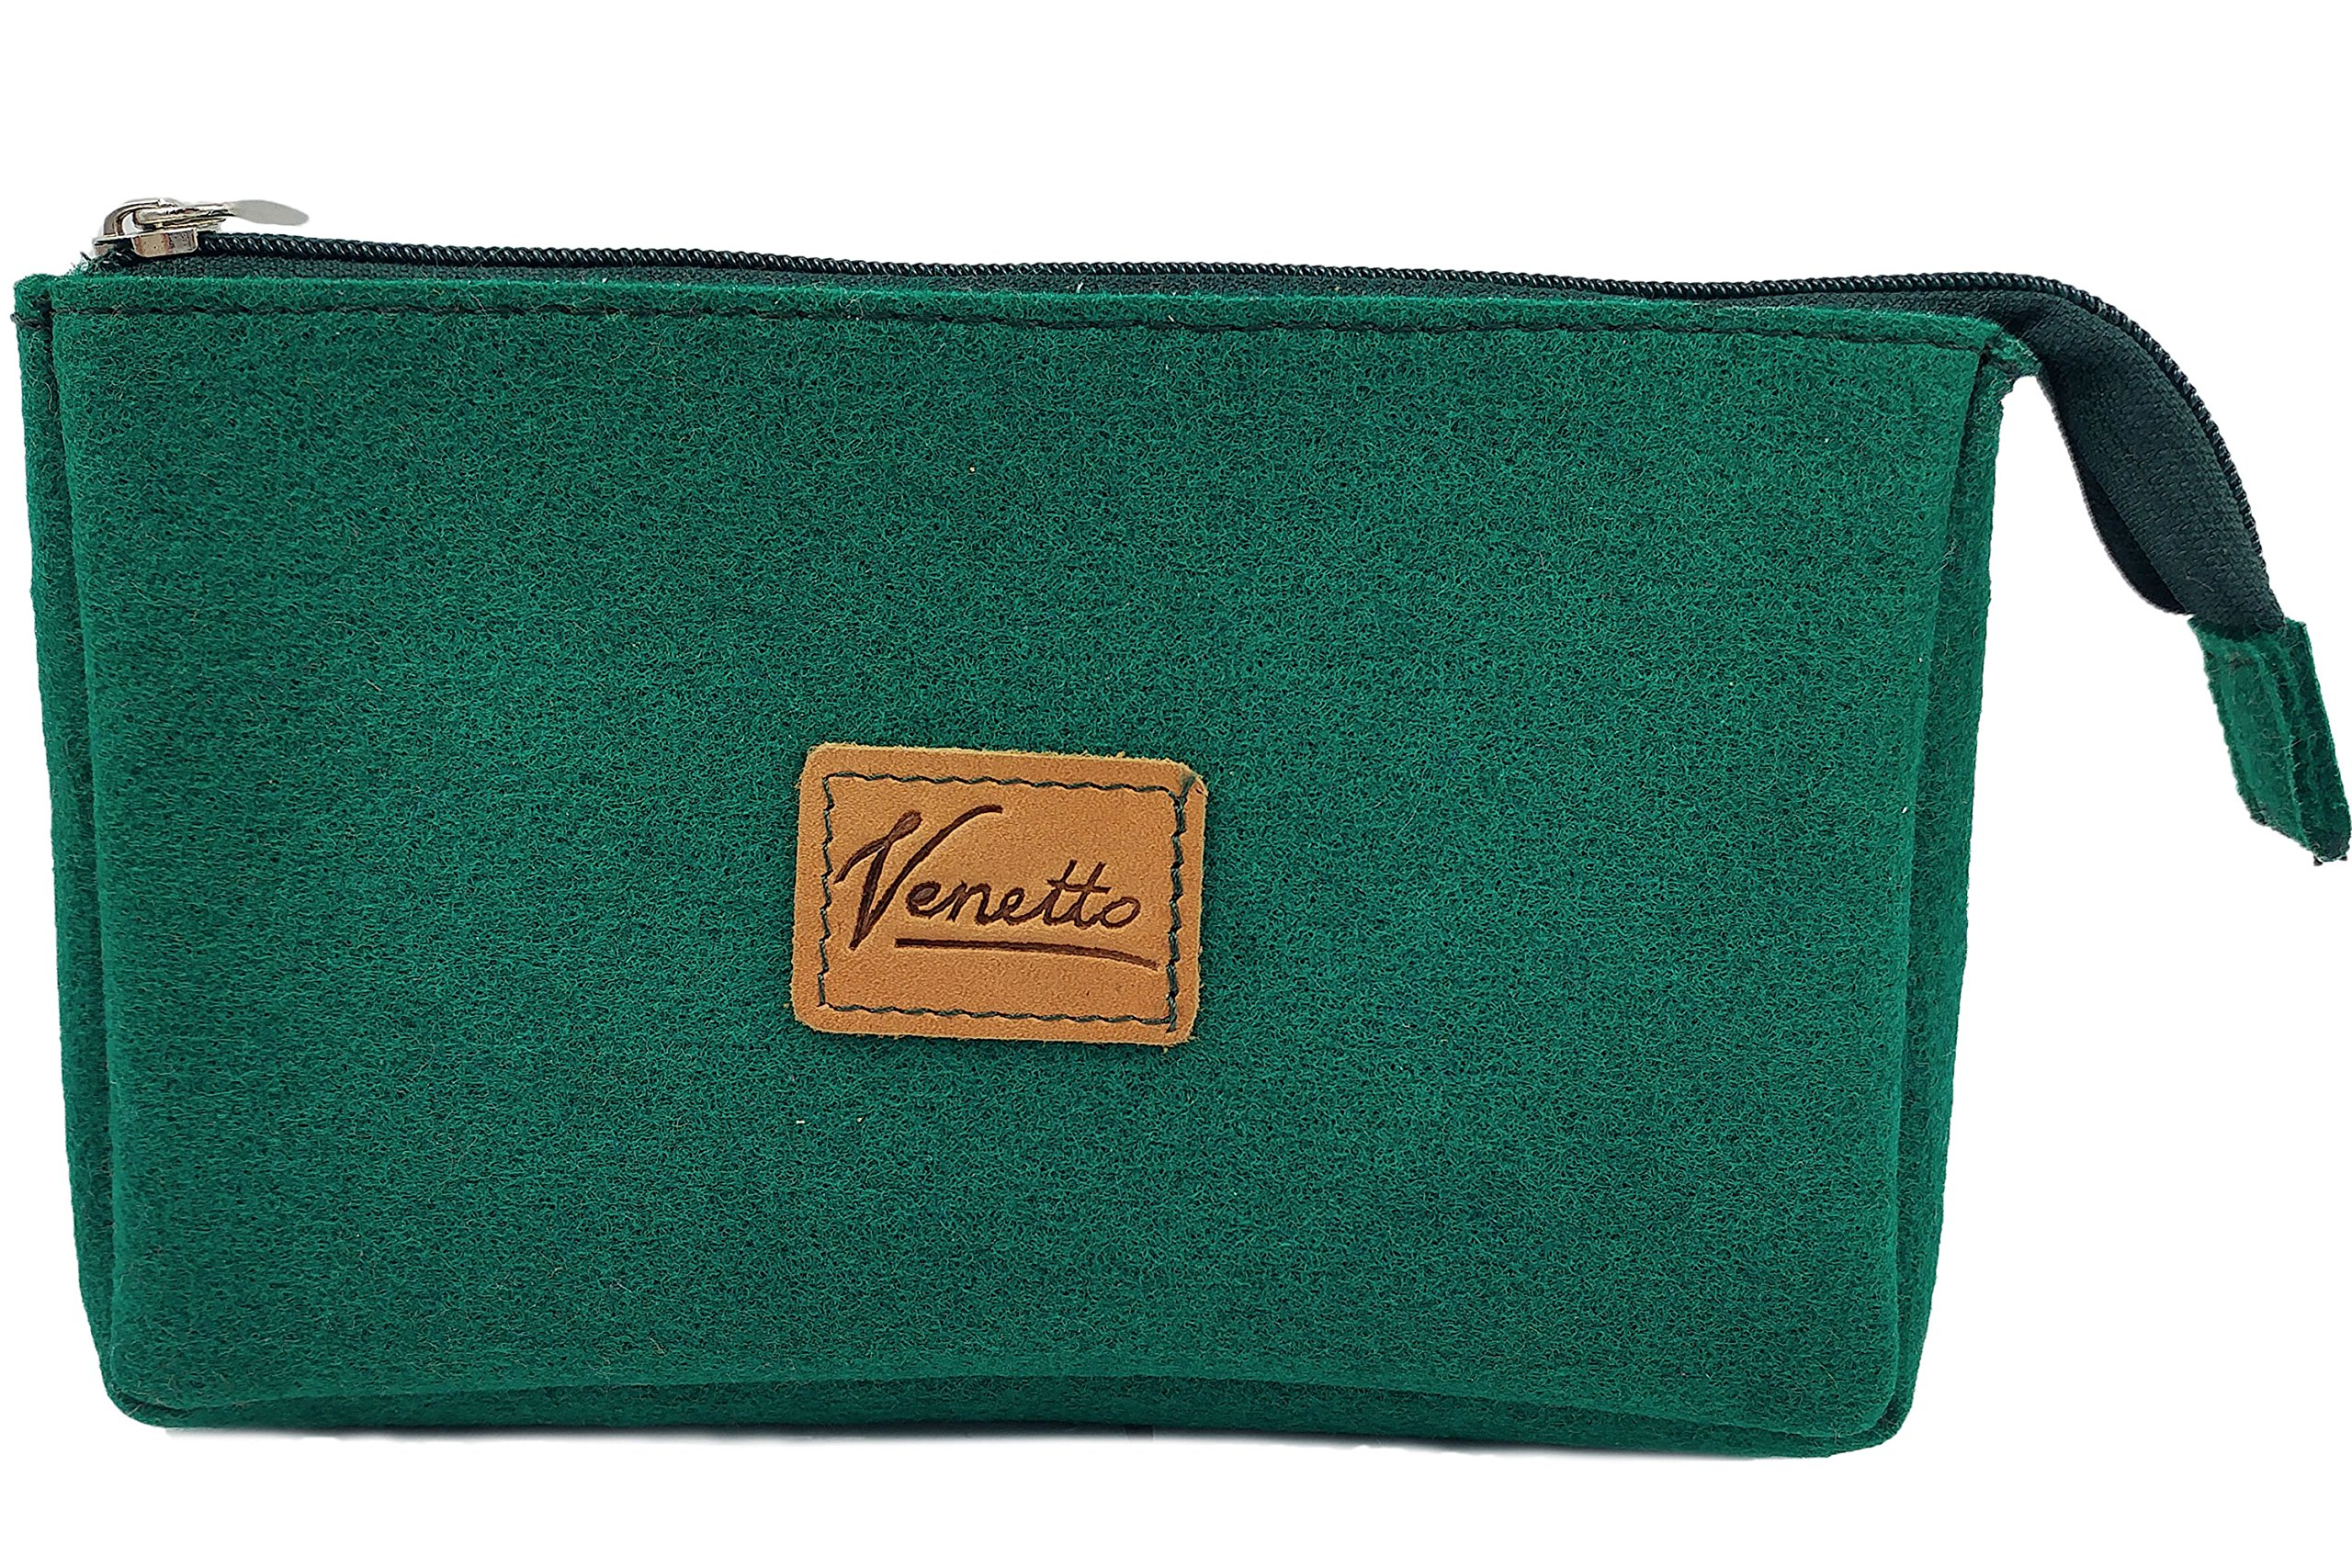 Culture bag Pouch Toiletry case overnight bag handmade of felt for accessories, organizer for power supply, PC mouse, e-cigarette, cosmetics, culture bag, cash, money, makeup (dark green)